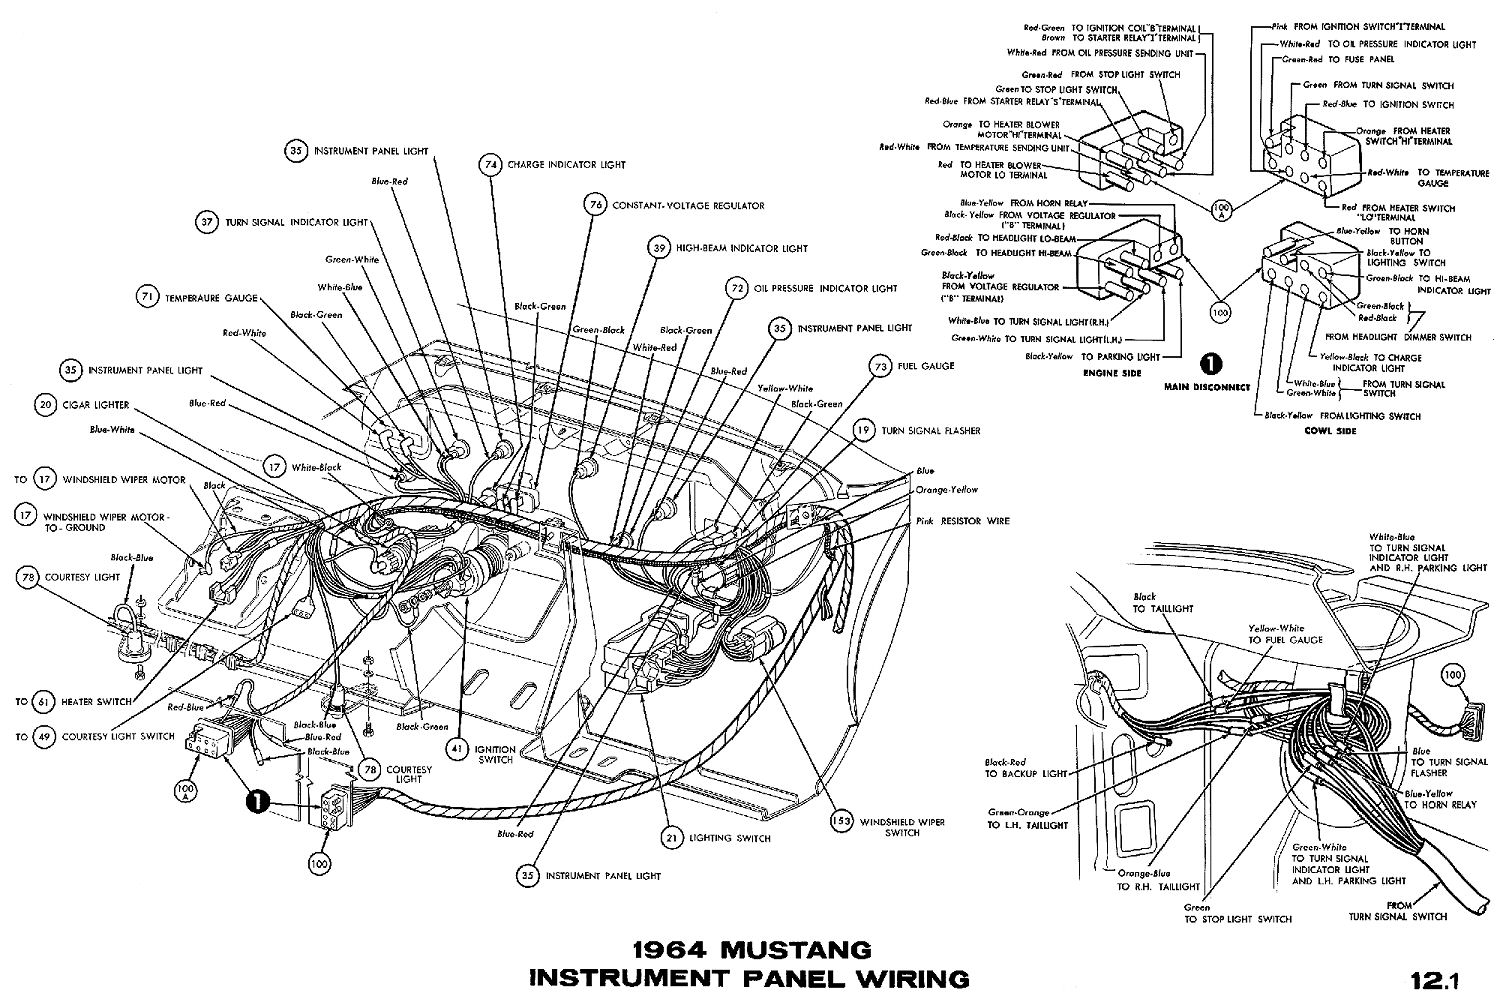 1964b 1964 mustang wiring diagrams average joe restoration Ford 4600 Wiring Schematic at fashall.co